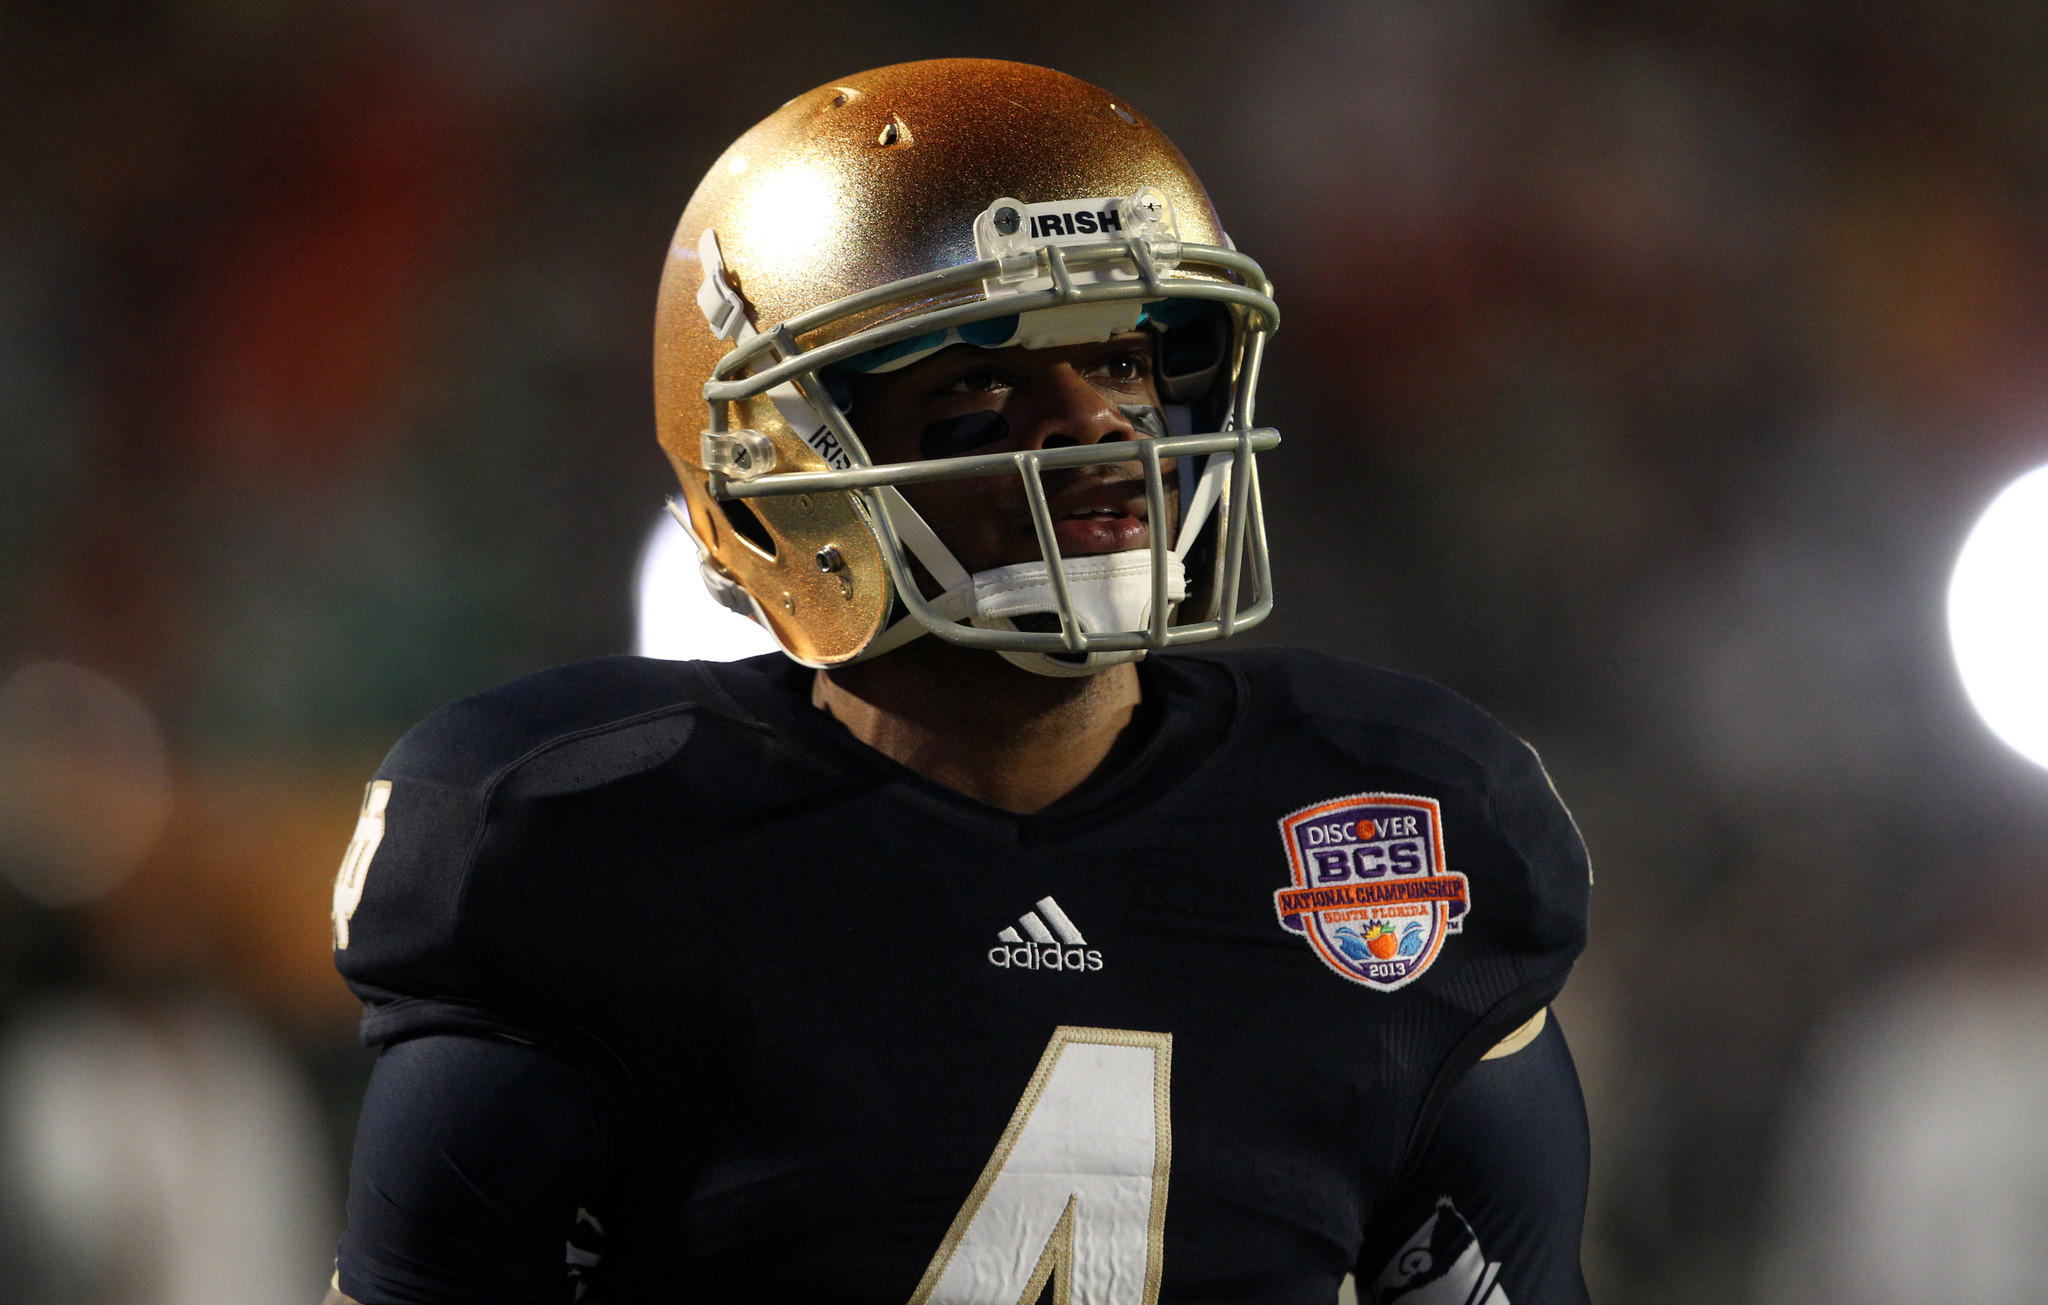 Notre Dame Fighting Irish running back George Atkinson III has decided to enter the NFL draft.